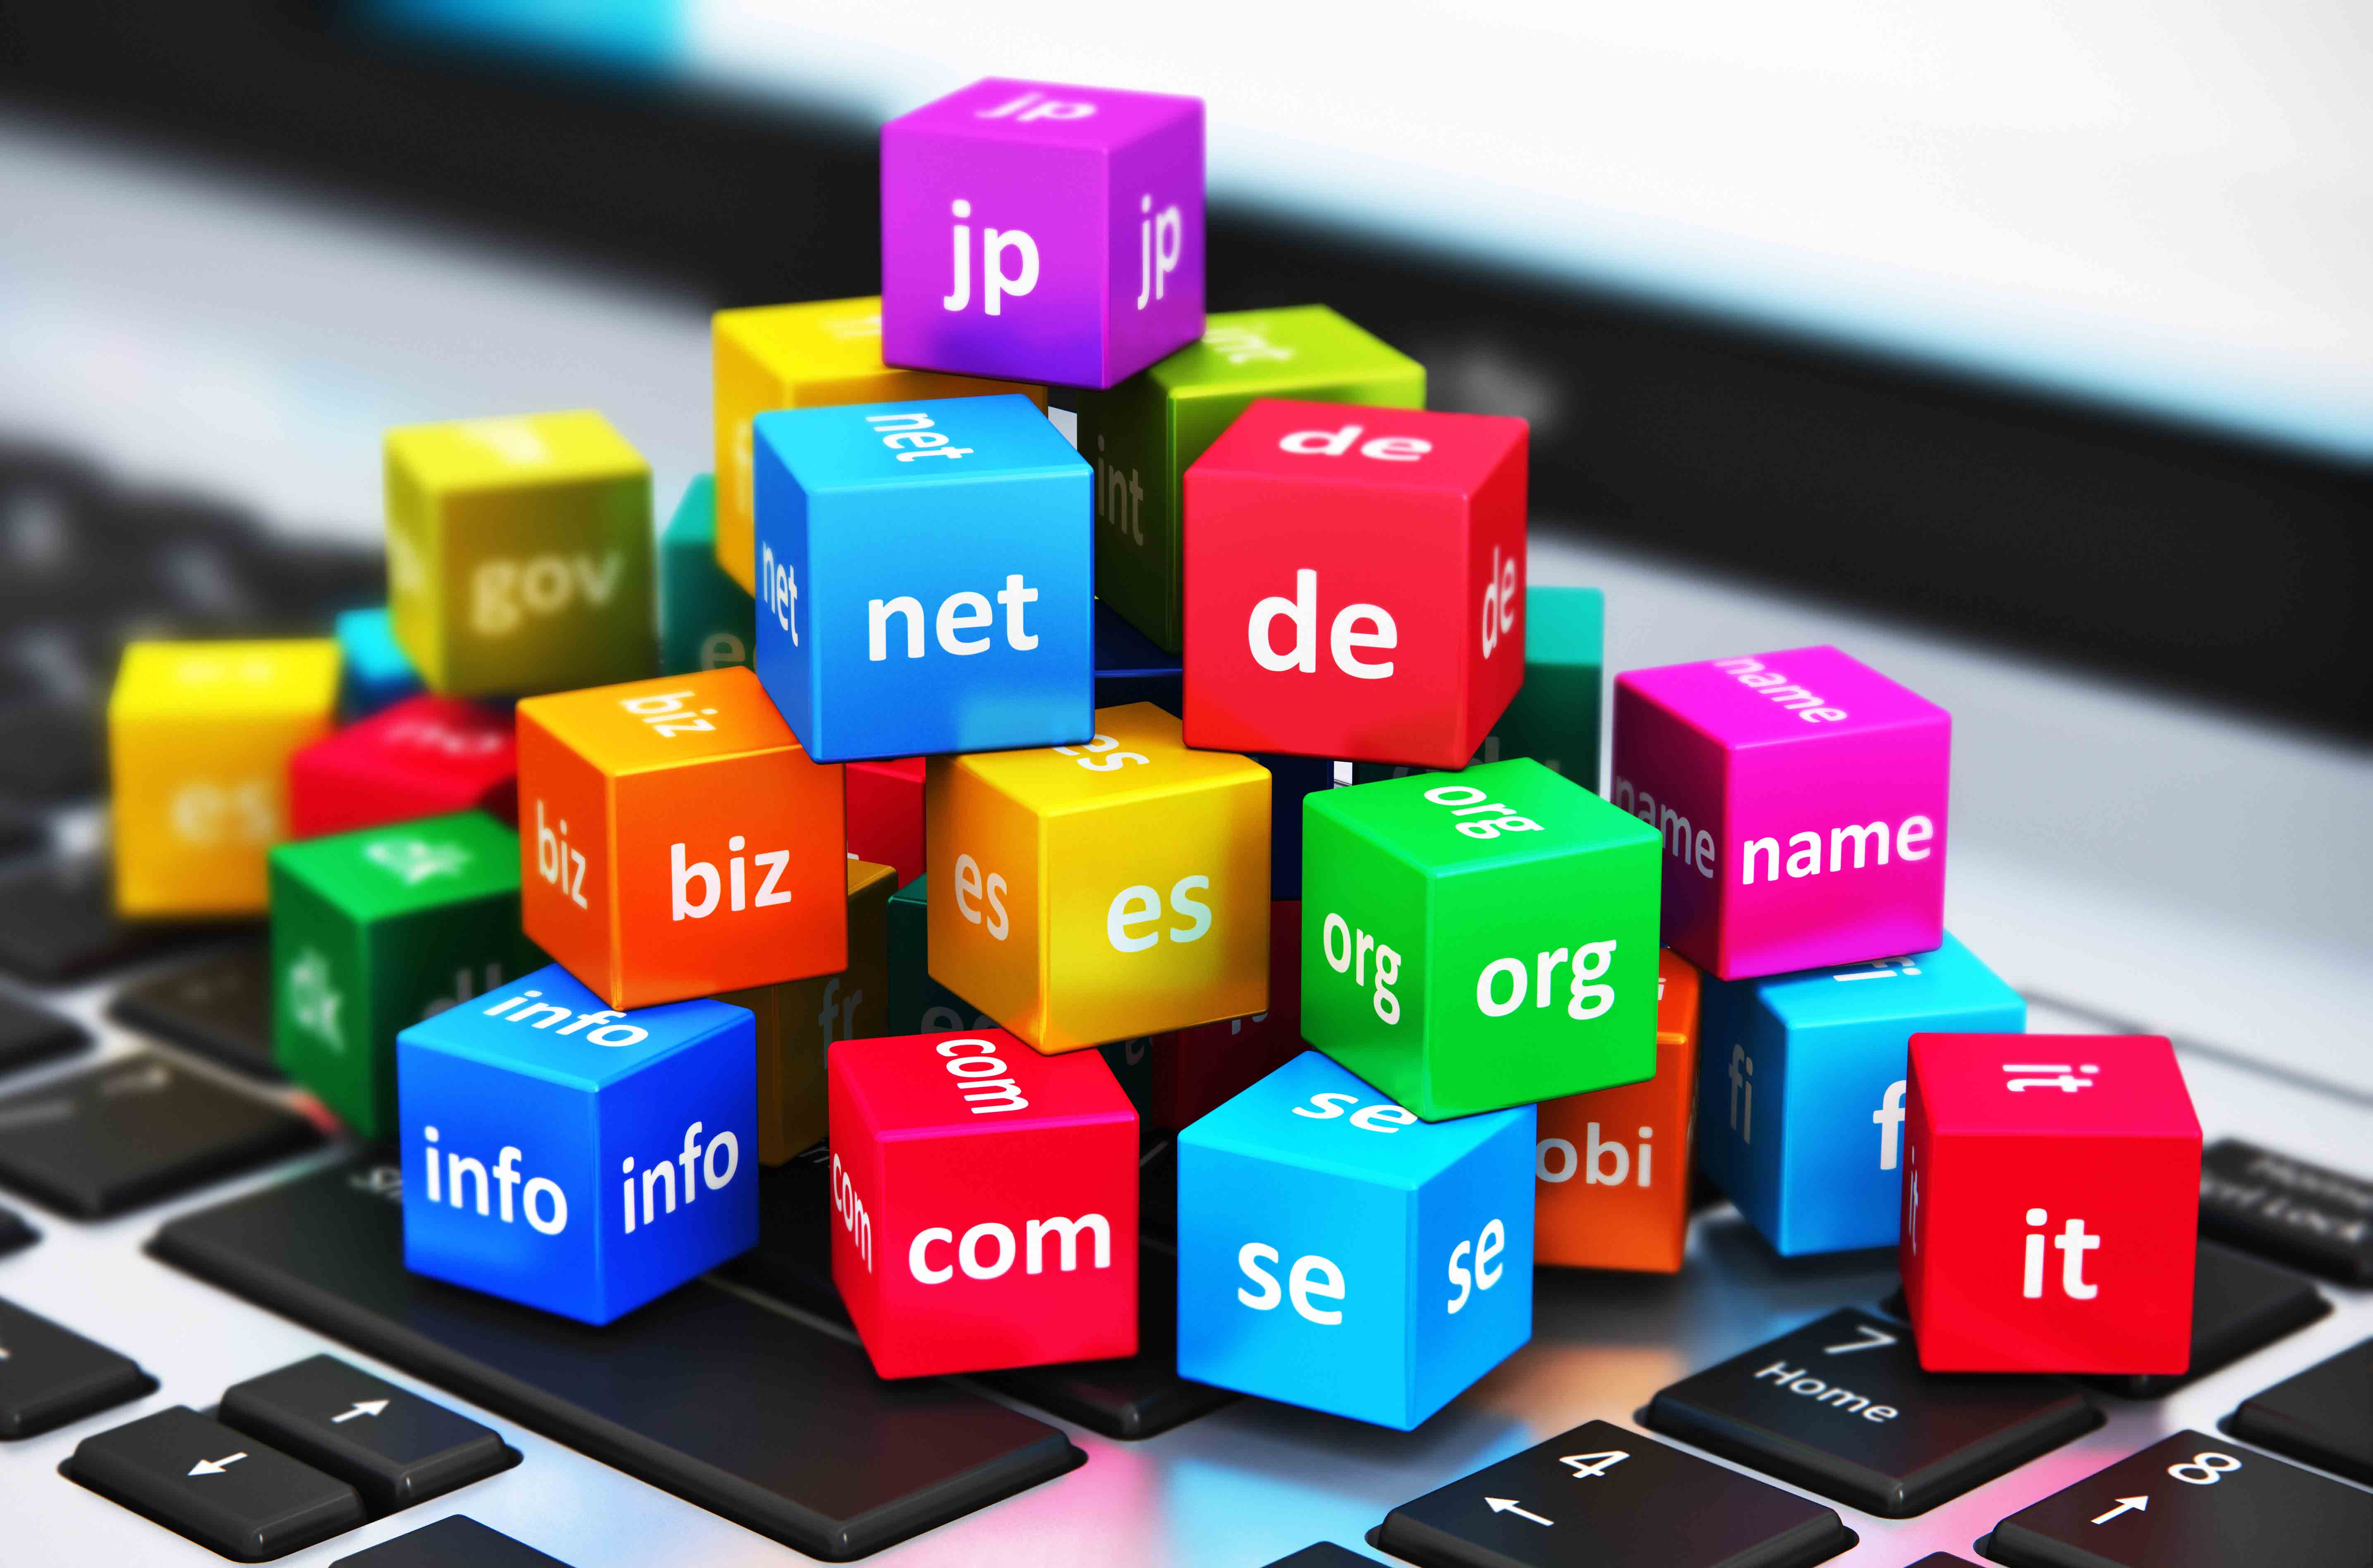 can a domain name be patented?